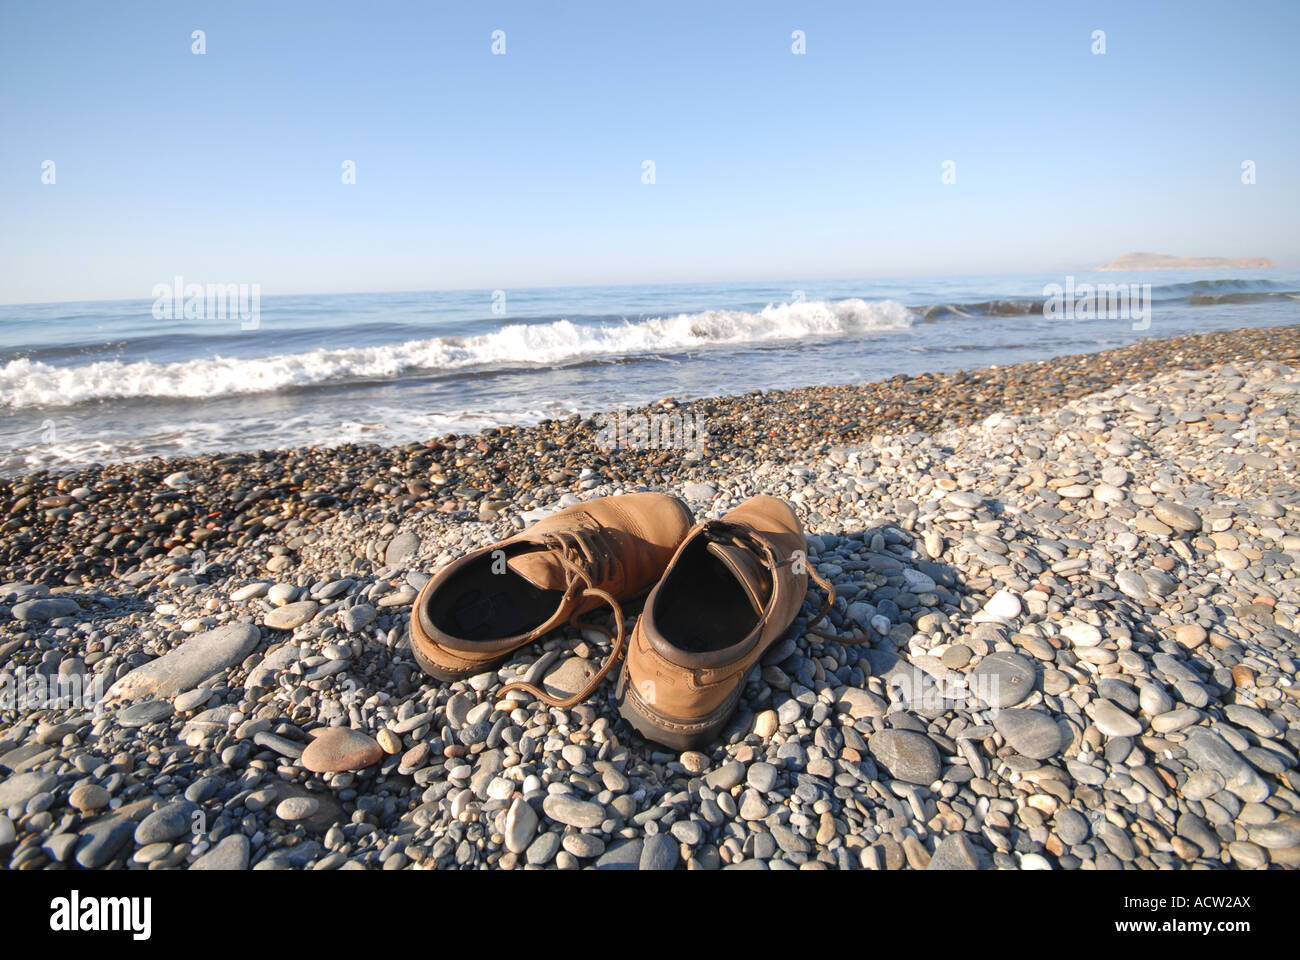 6043183d5d50 CRETE Shoes on the beach at Maleme near Hania Stock Photo  13231585 ...